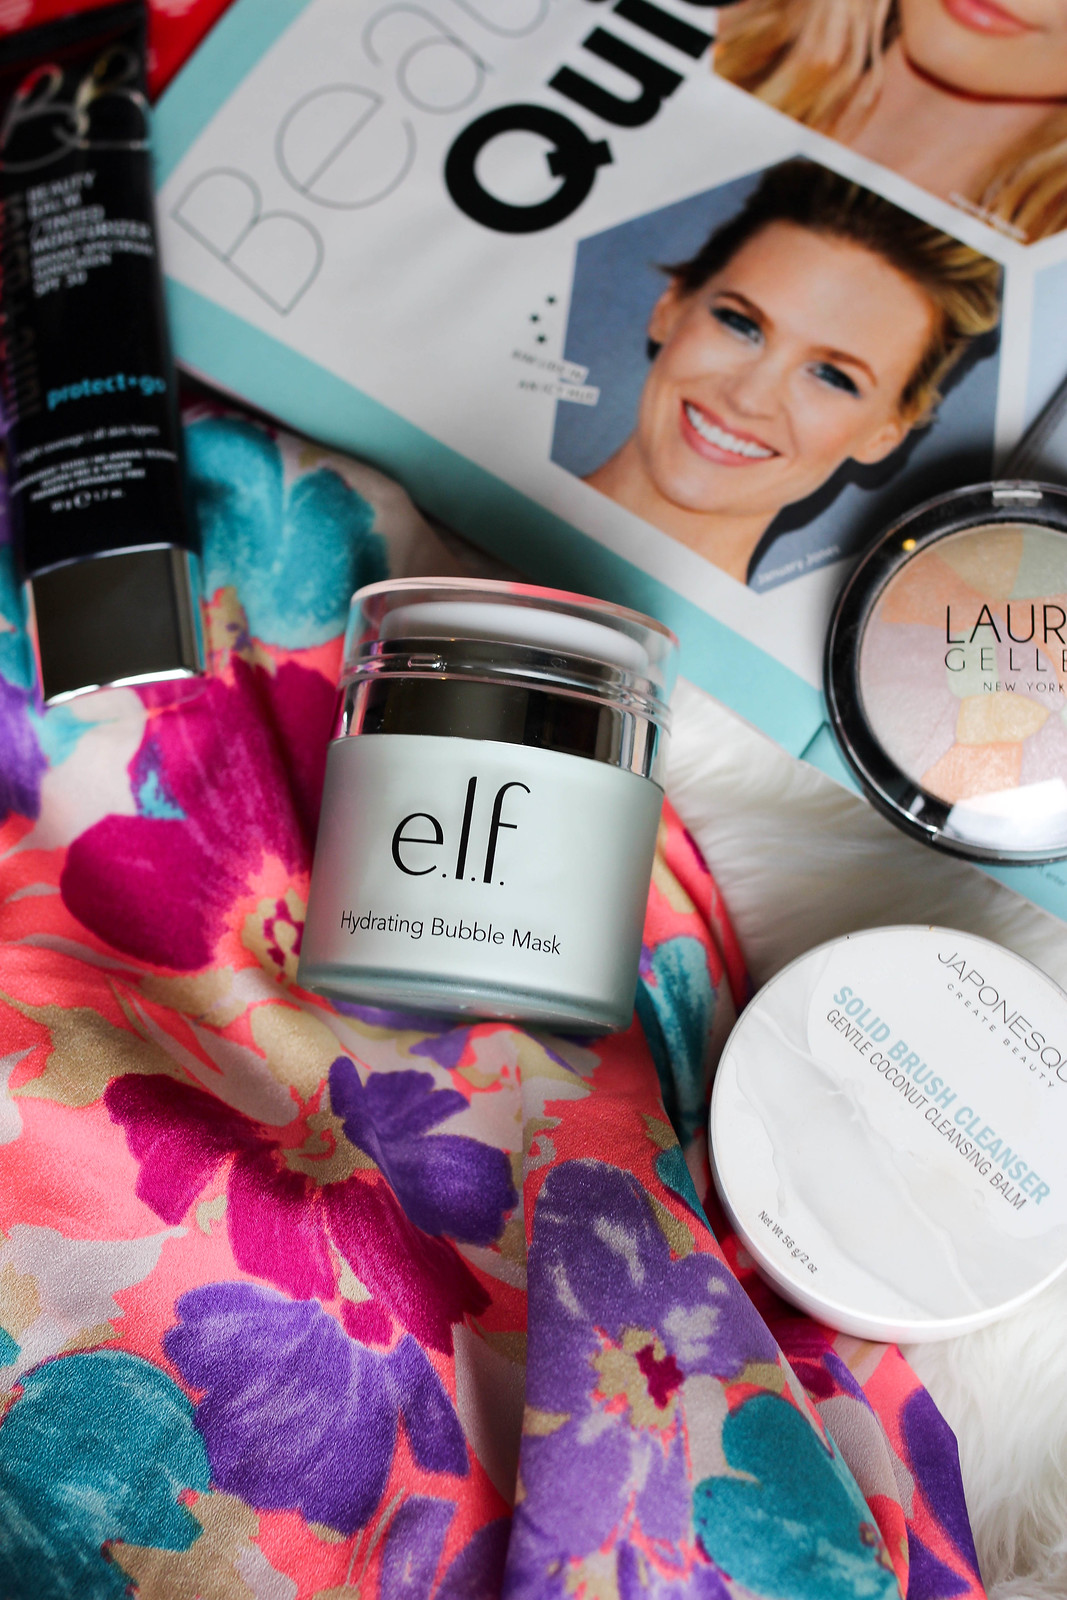 My July Beauty Essentials on Living After Midnite e.l.f. Hydrating Bubble Mask